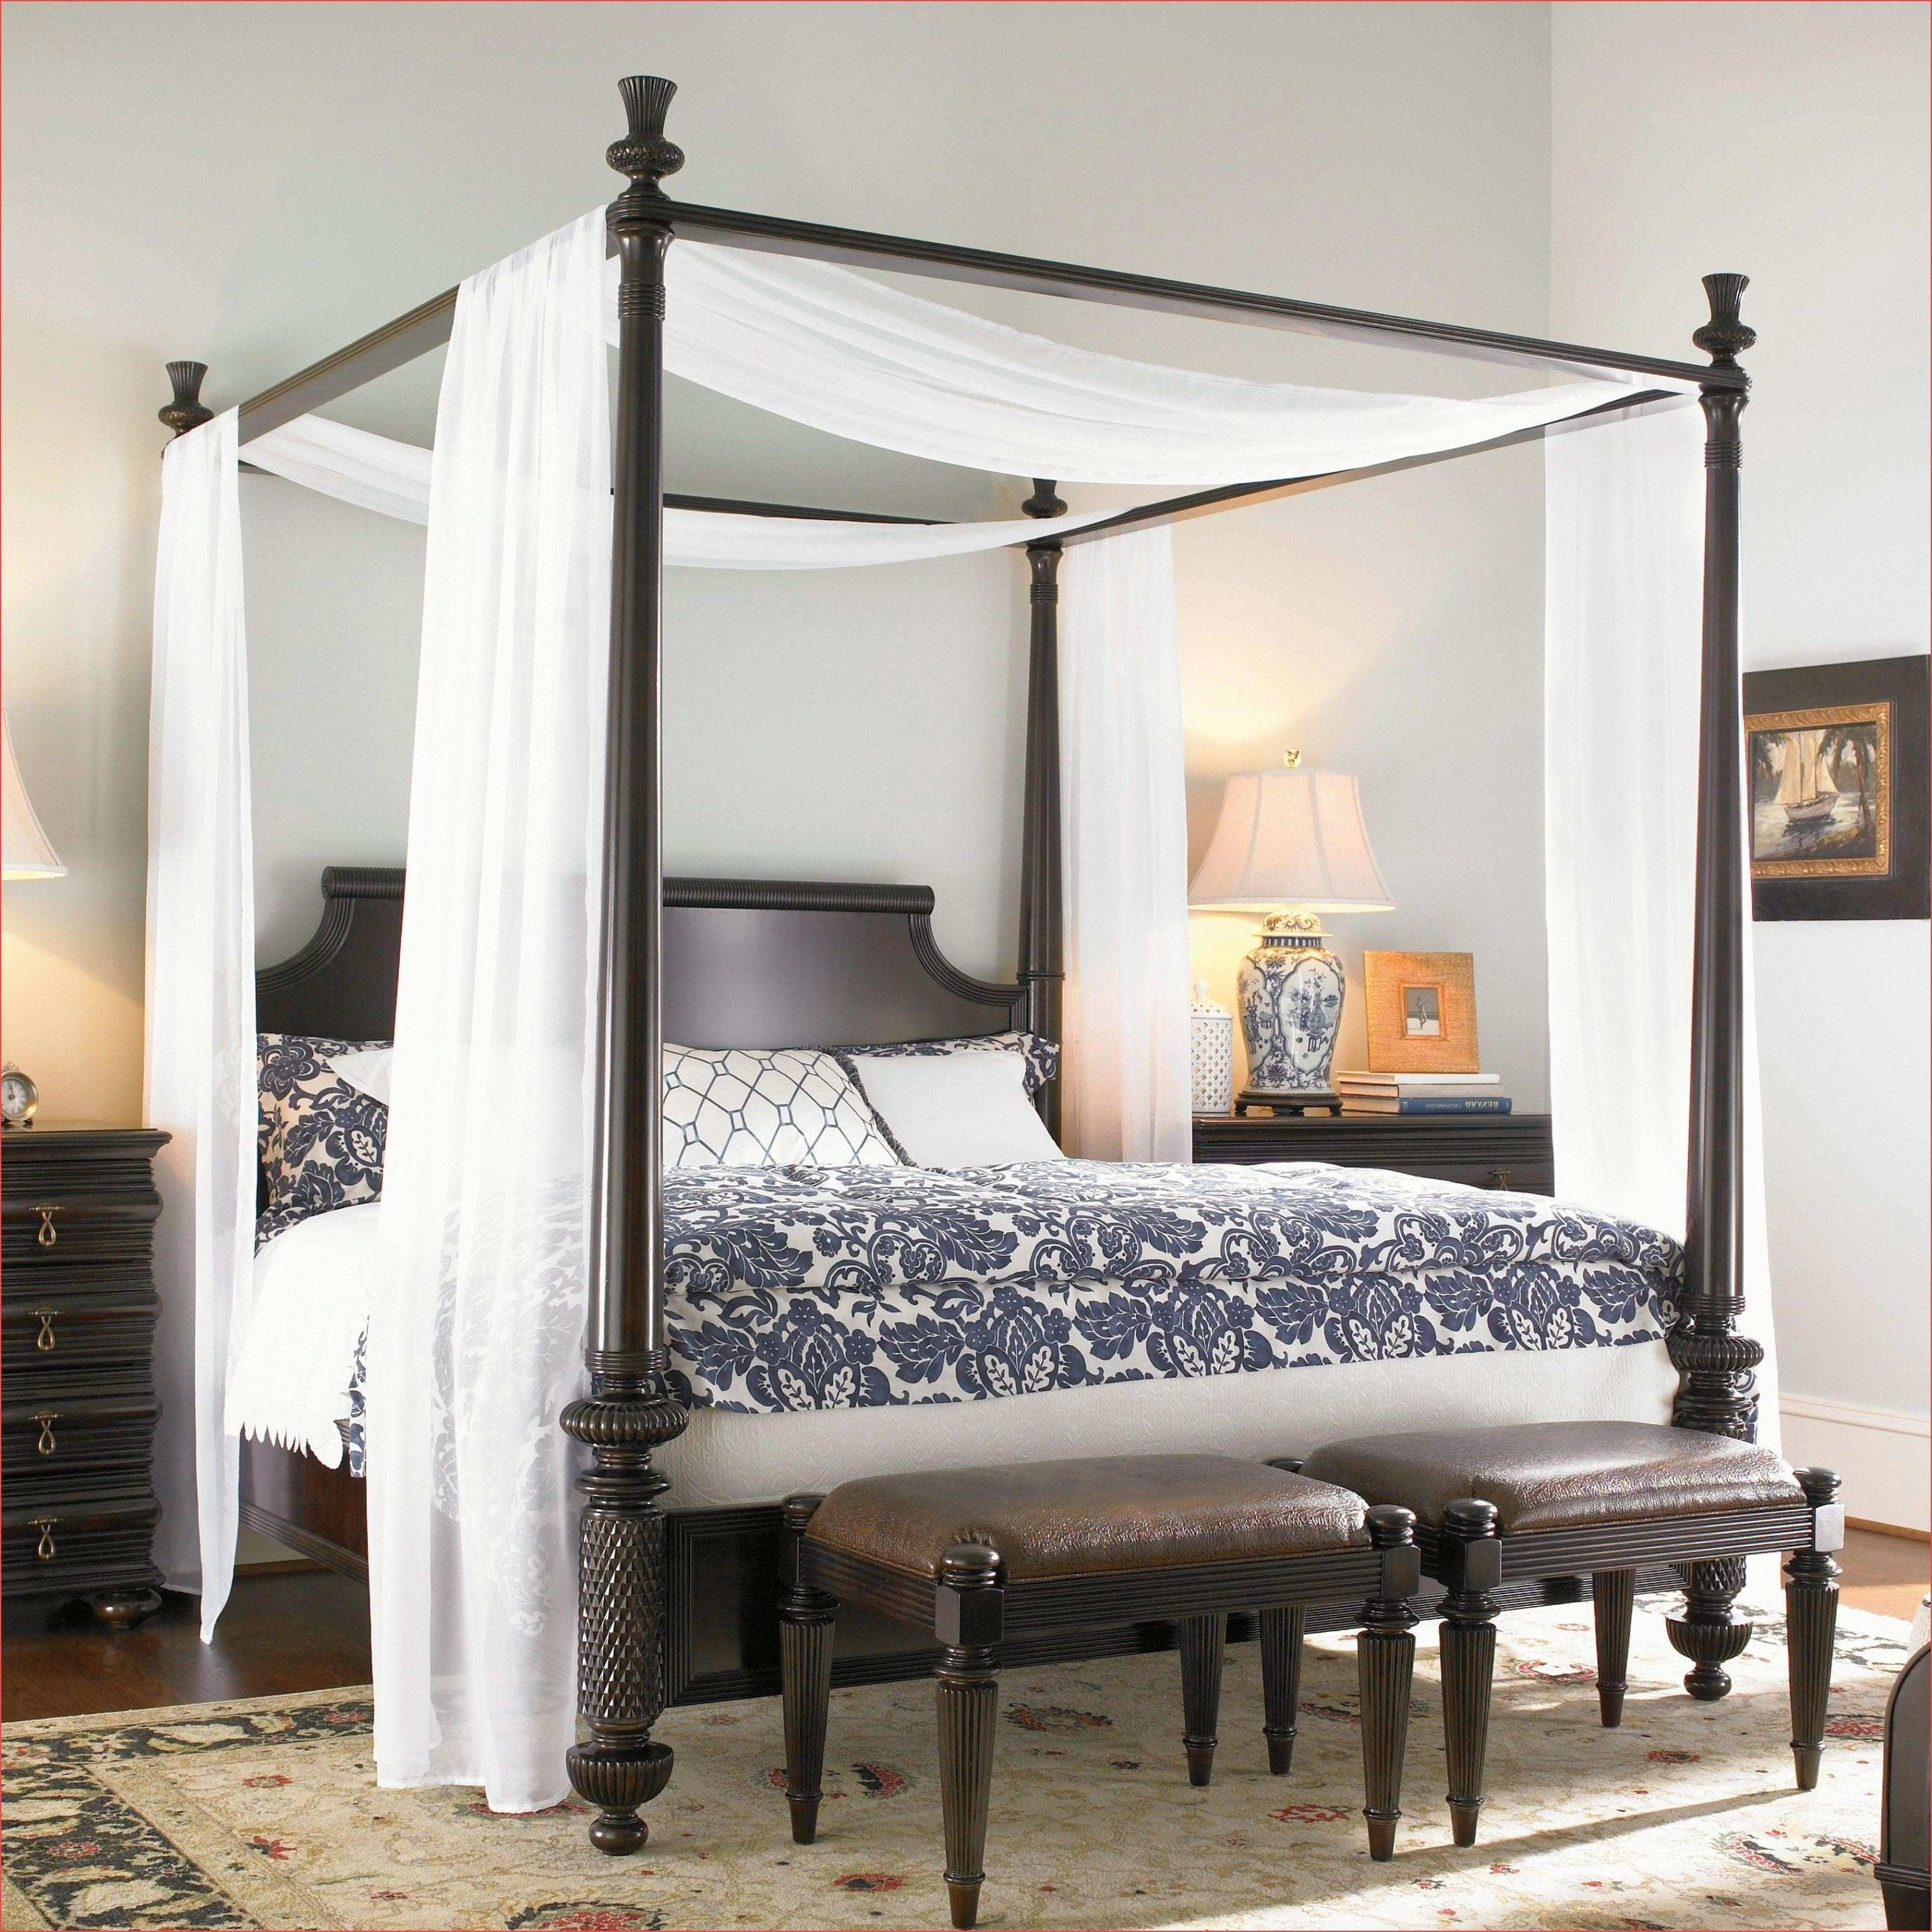 Best Price Bed Frames Beautiful Bedroom Decoration Luxury Blakeney